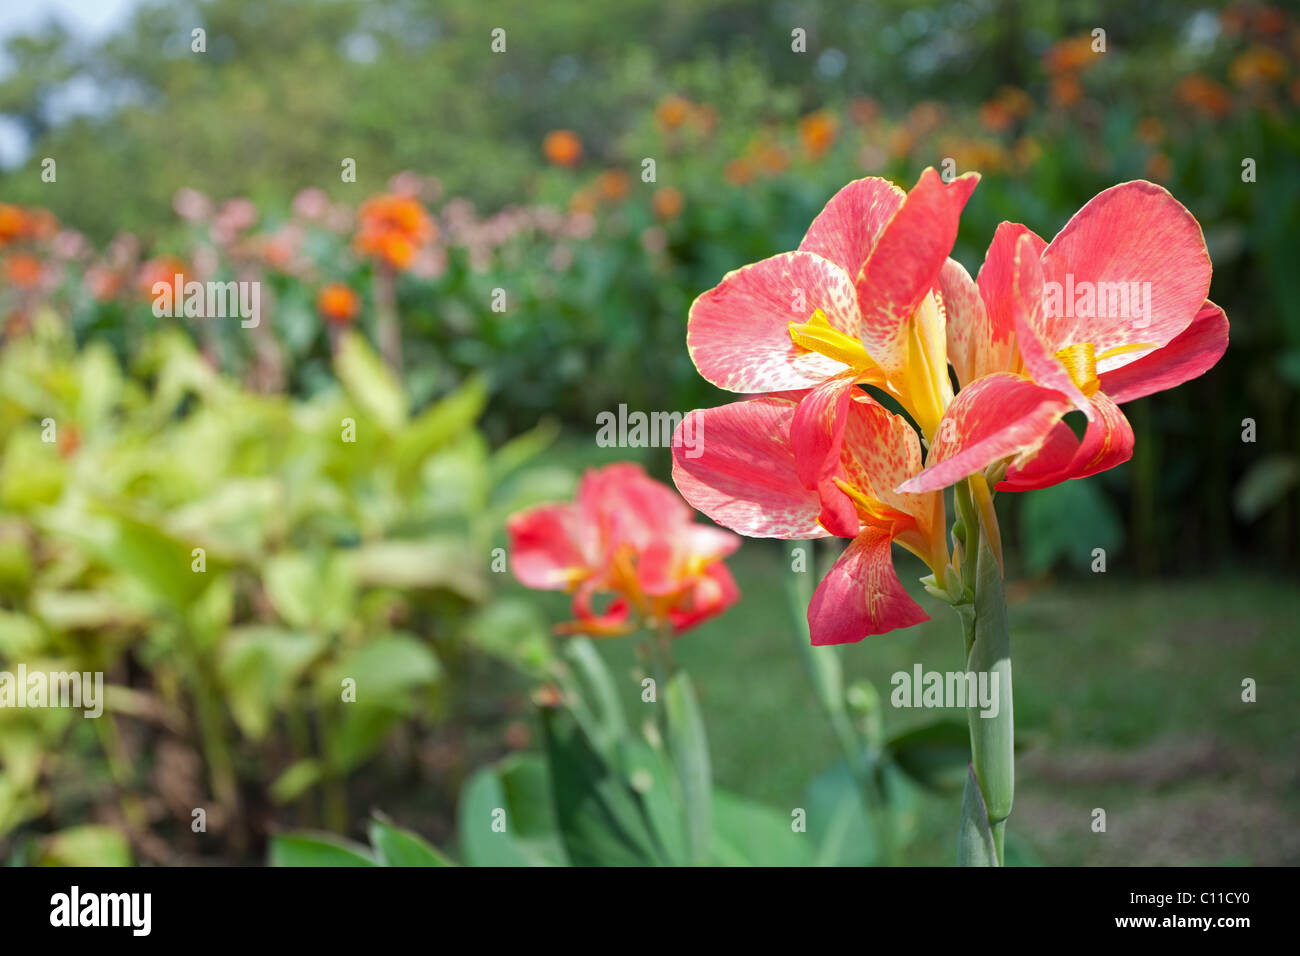 Pink Canna Lily Flowers Stock Photos Pink Canna Lily Flowers Stock